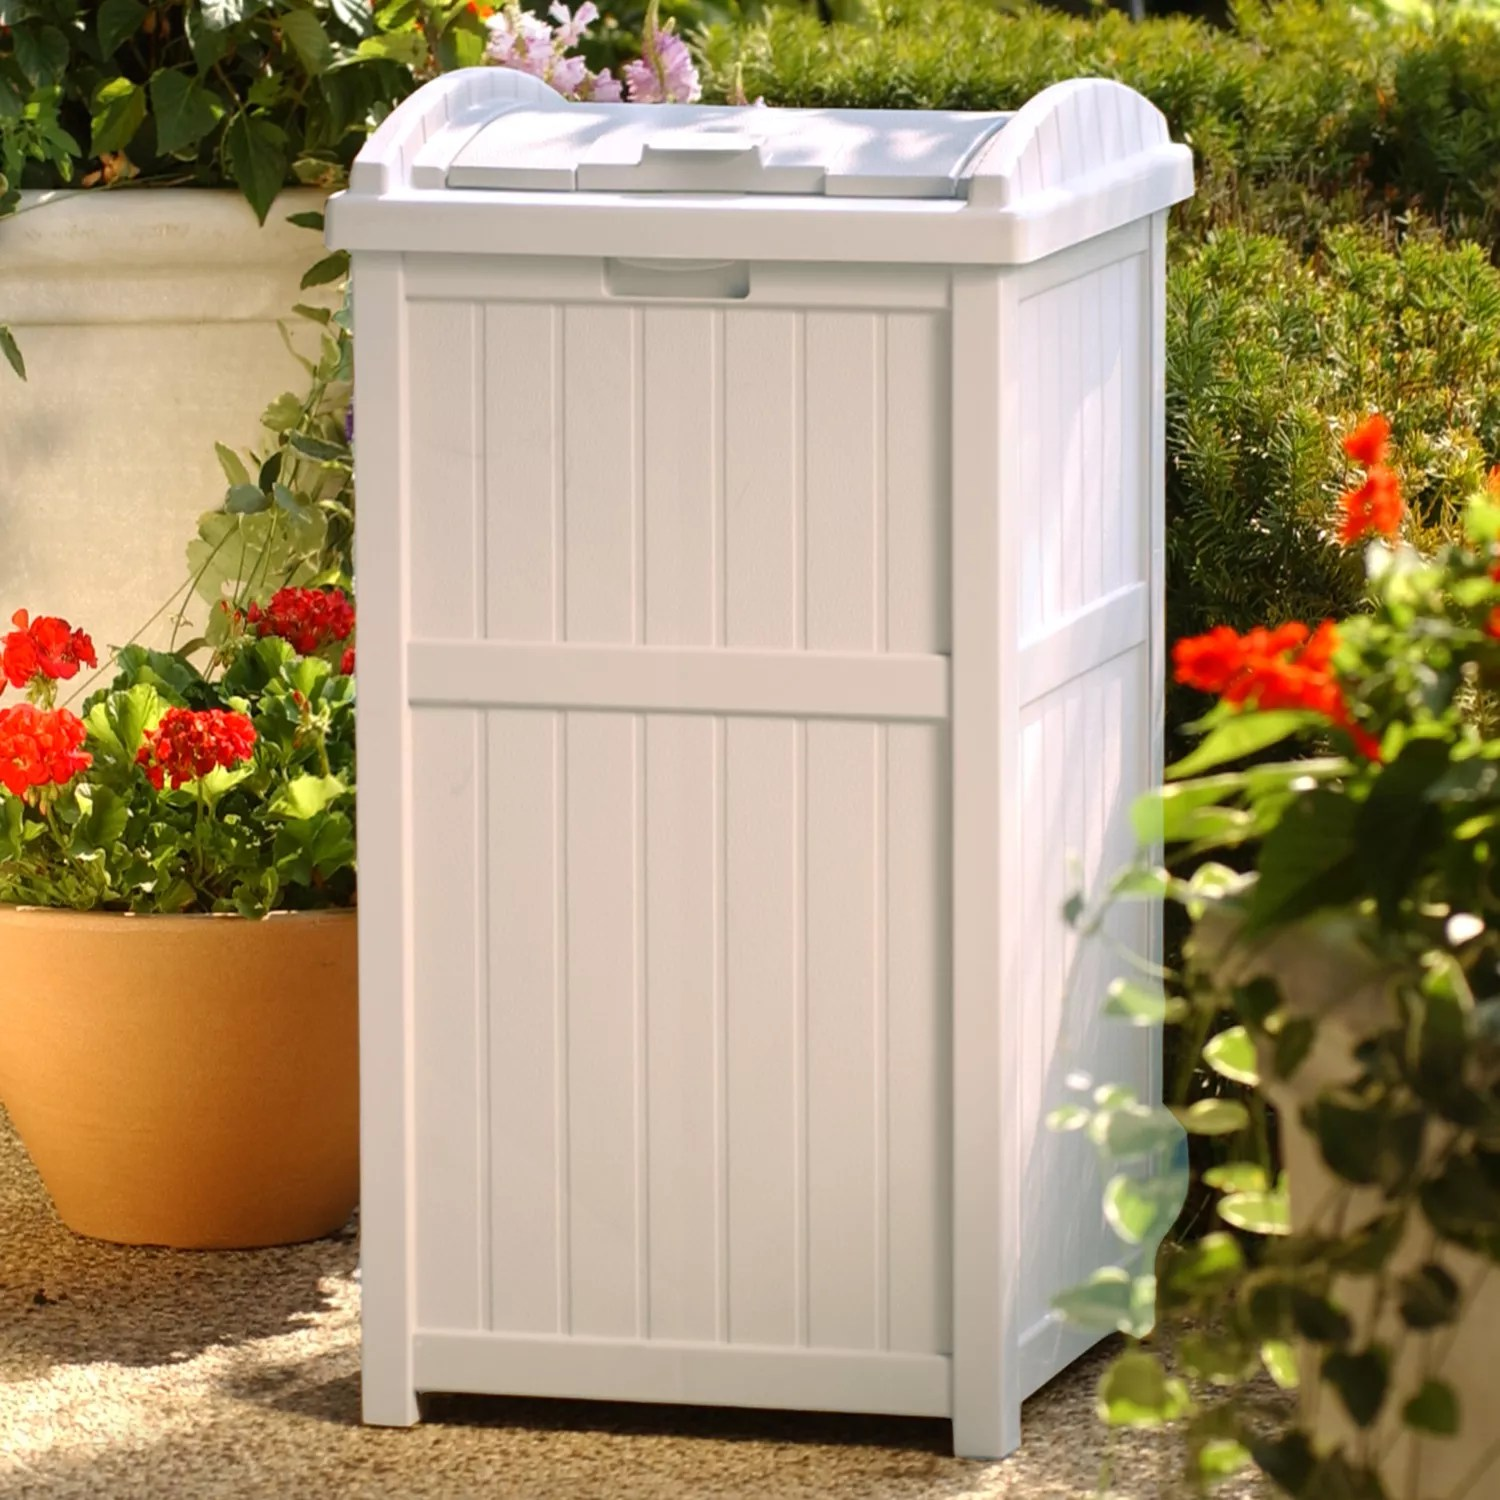 Outdoor 33 Suncast 33-gallon Trash Hideaway - Outdoor